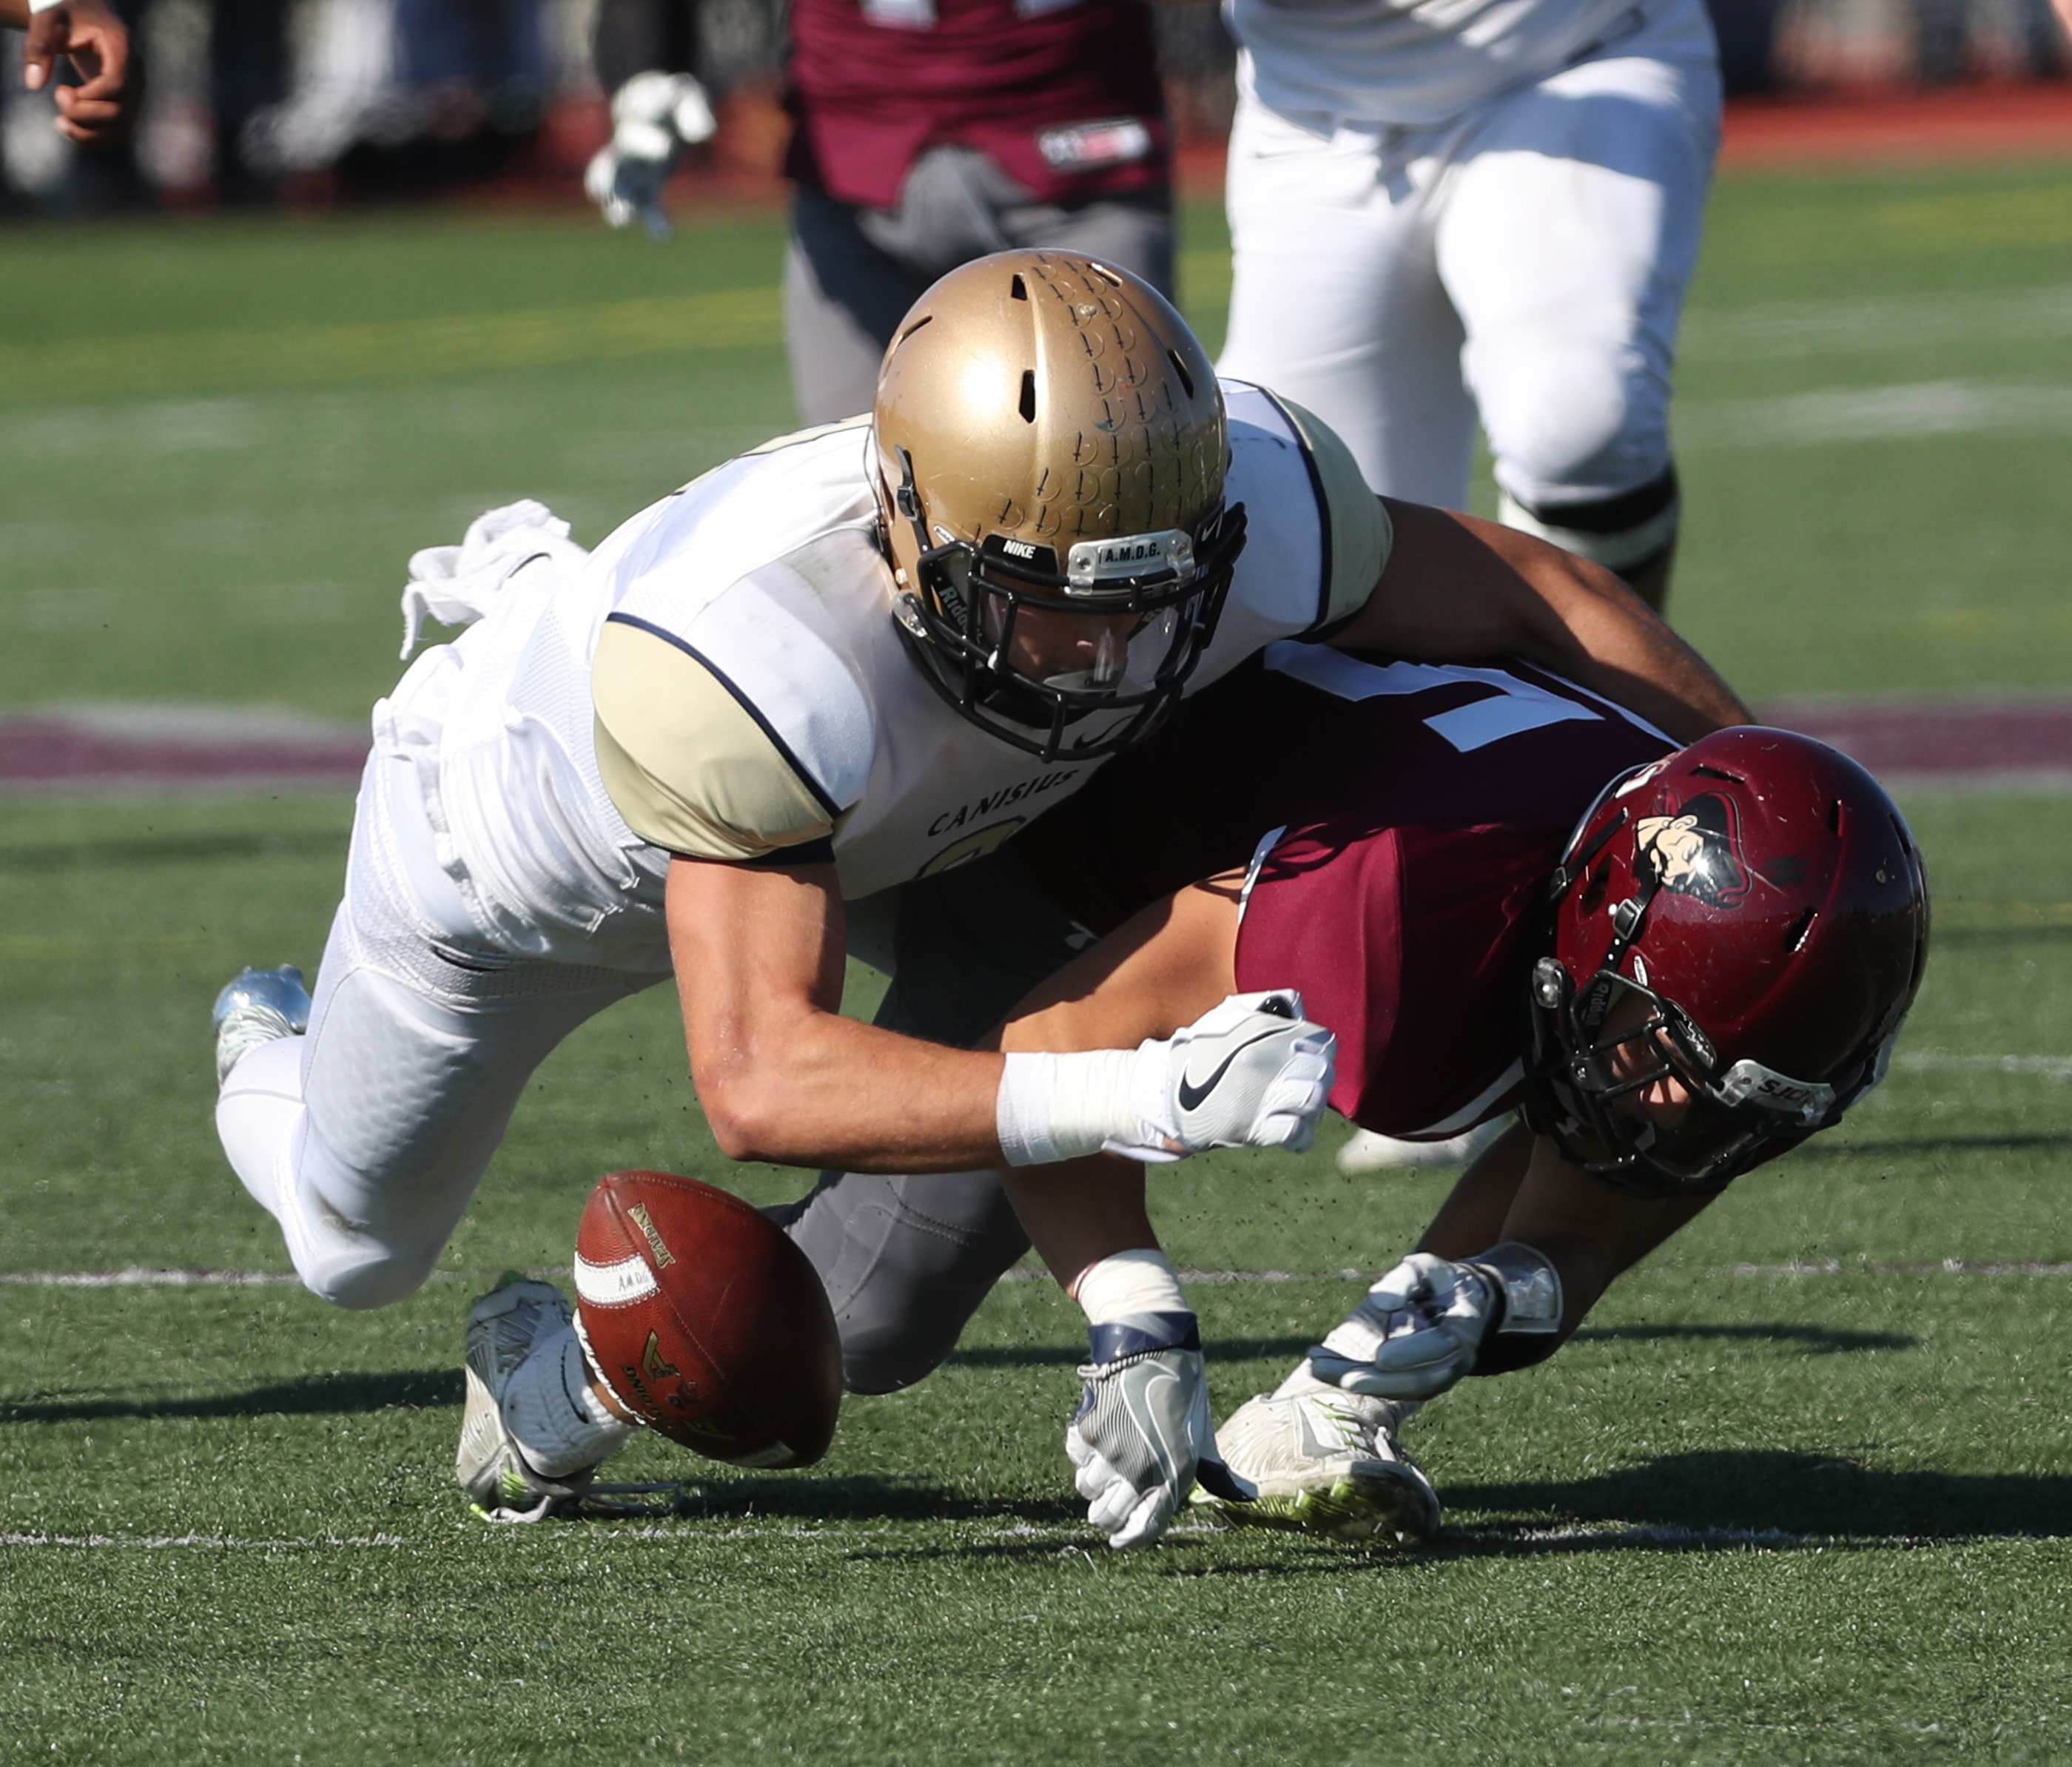 Canisius Zeke Margaritis forces a fumble on a punt recovered by teammate Kenyatta Huston that led to a Crusaders touchdown during Saturday's win at St. Joe's.  (James P. McCoy/ Buffalo News)